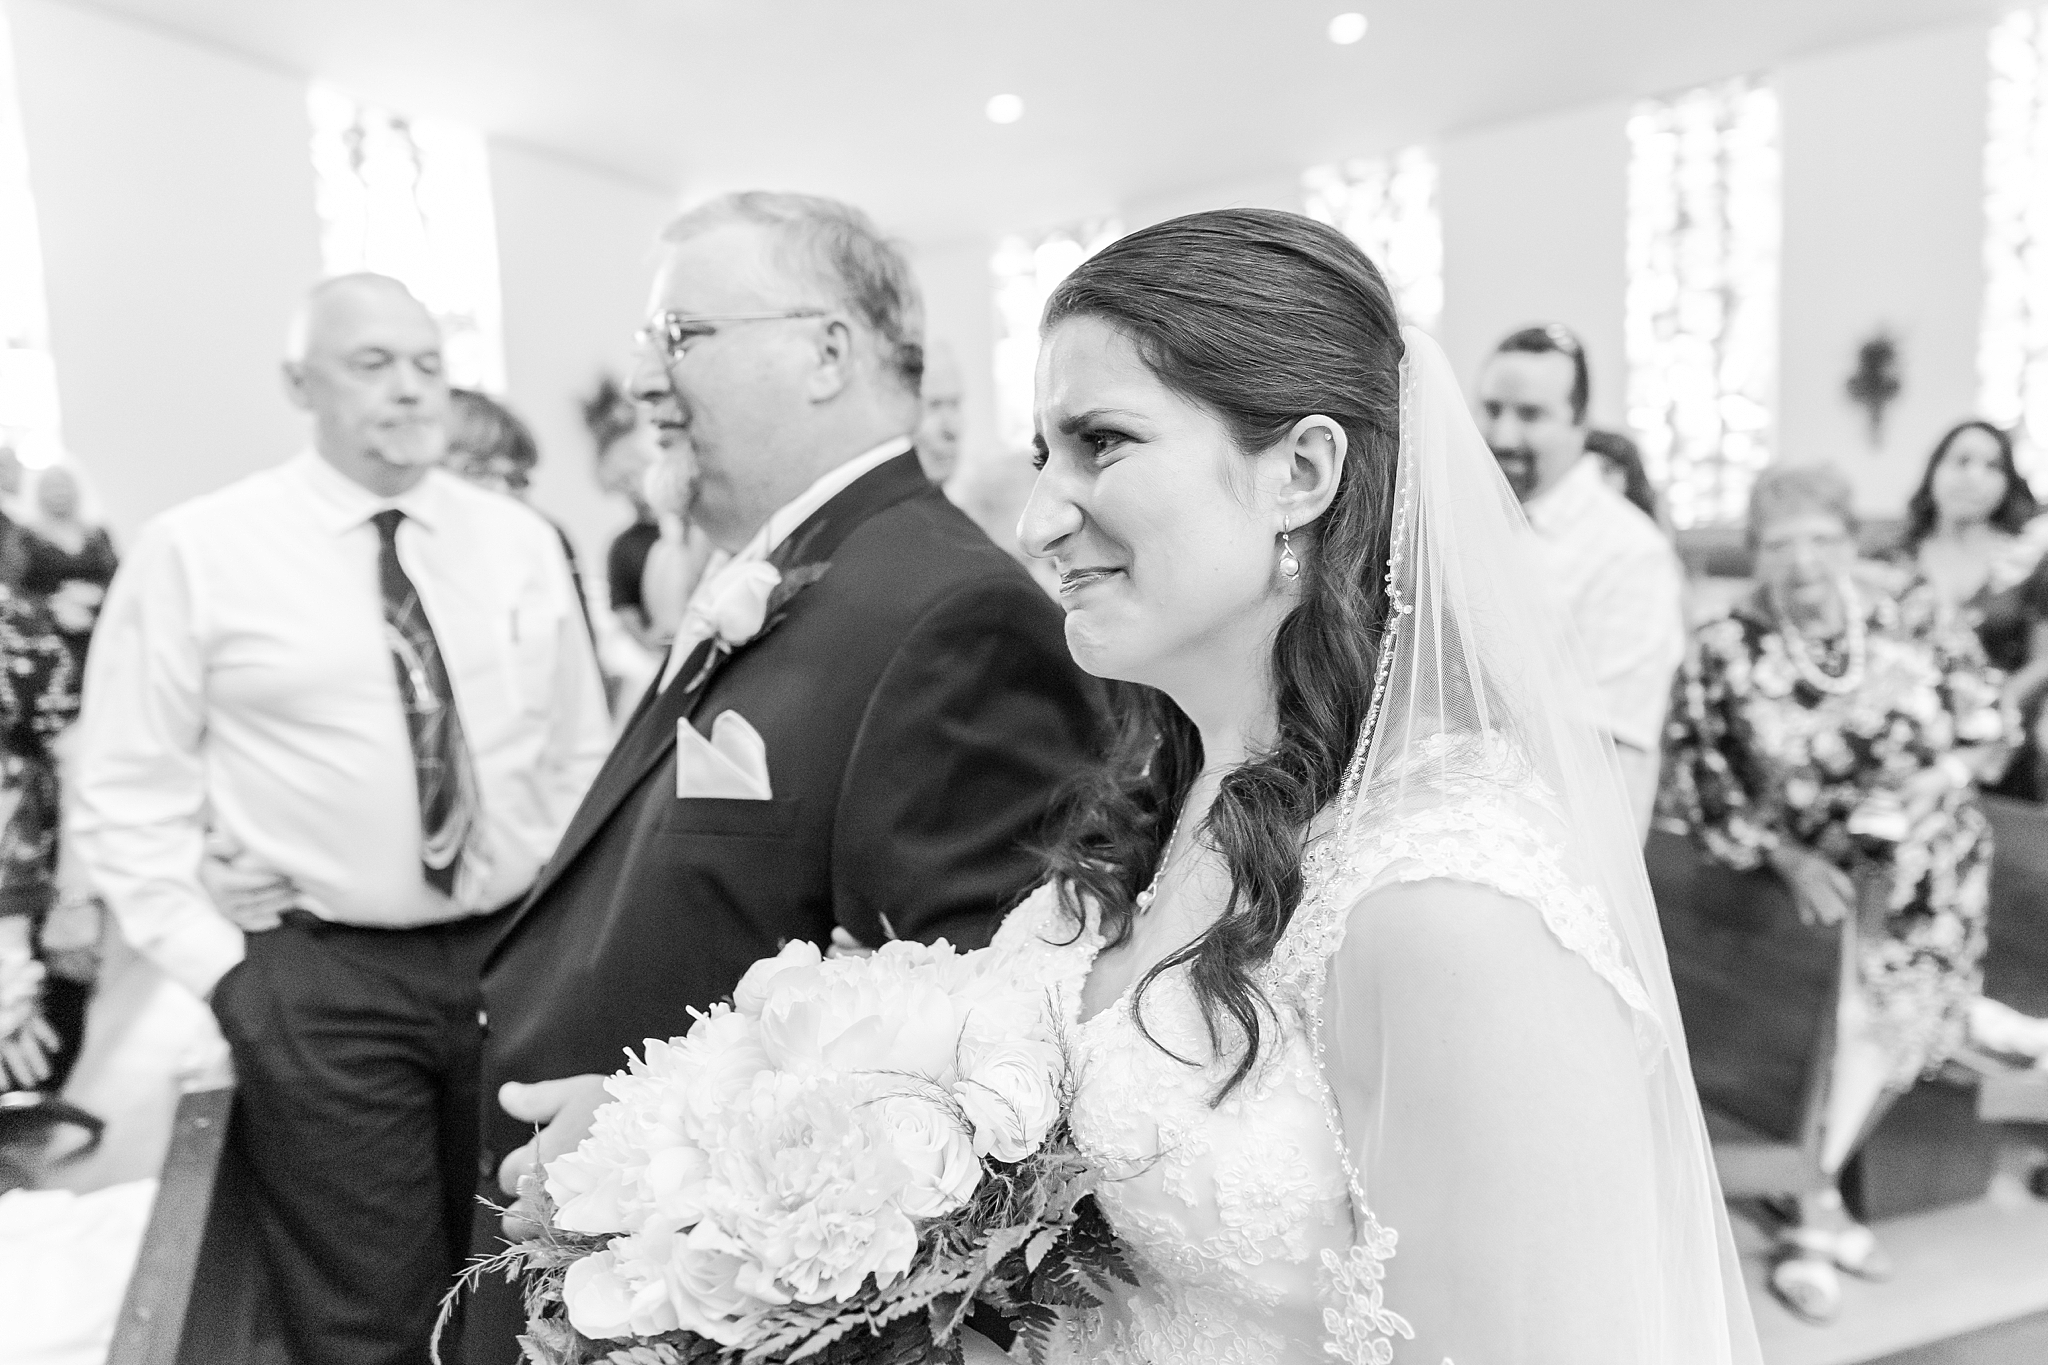 joyful-romantic-modern-laid-back-wedding-photography-in-detroit-ann-arbor-northern-mi-and-chicago-by-courtney-carolyn-photography_0055.jpg